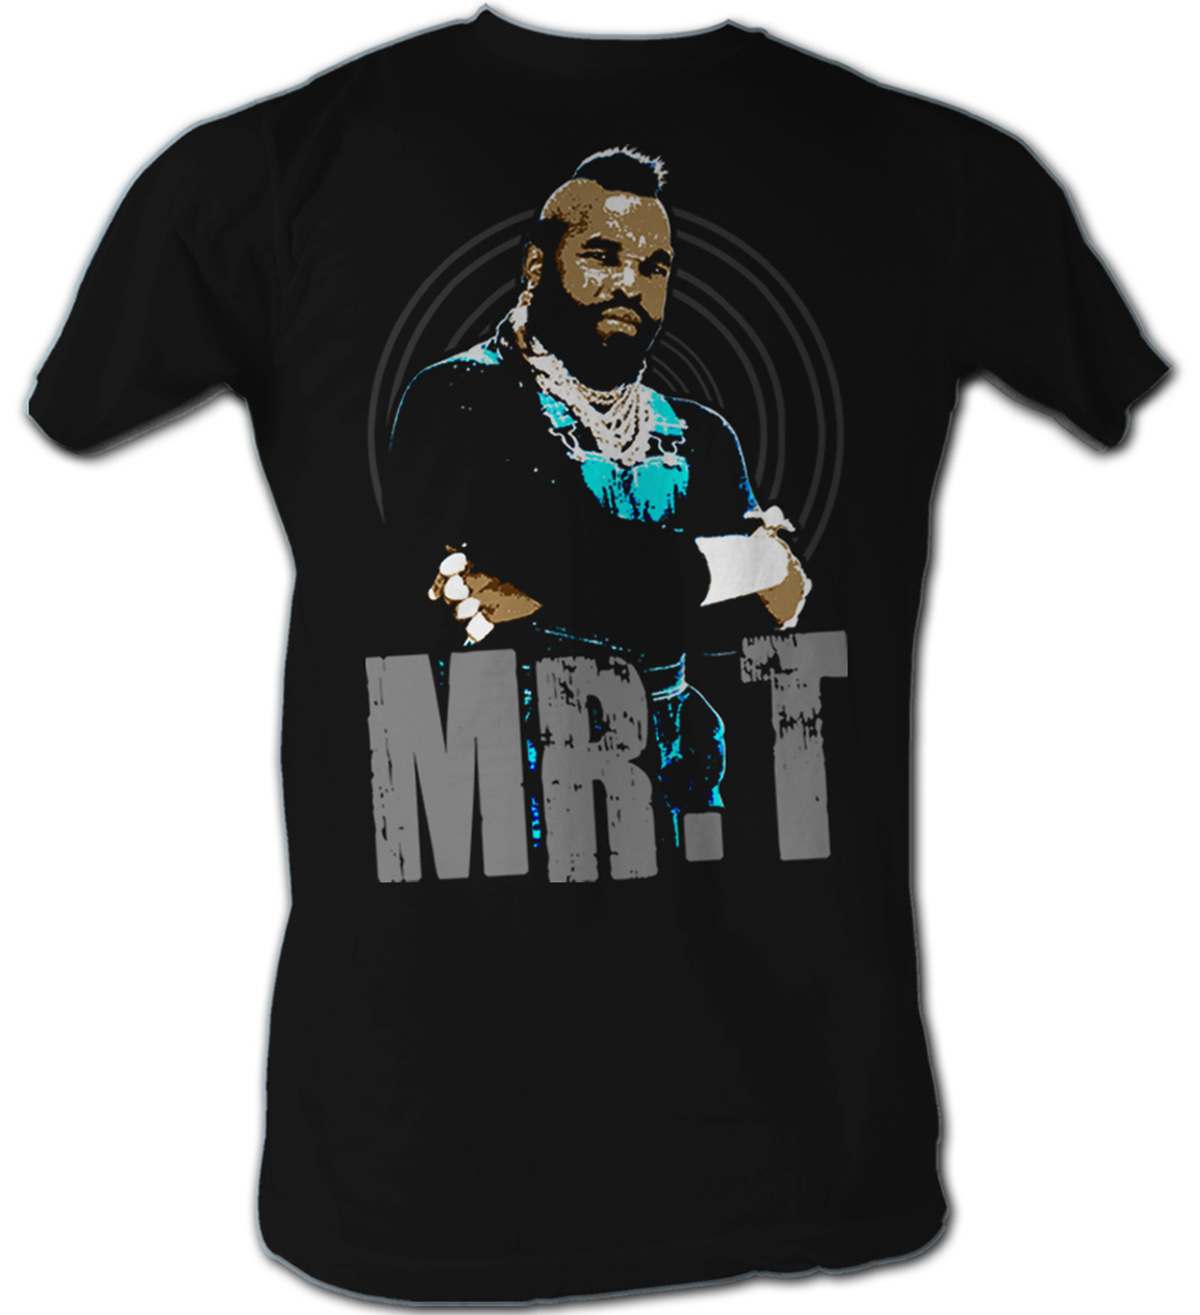 mr t t shirt black and white a team adult black tee shirt mr t shirts. Black Bedroom Furniture Sets. Home Design Ideas